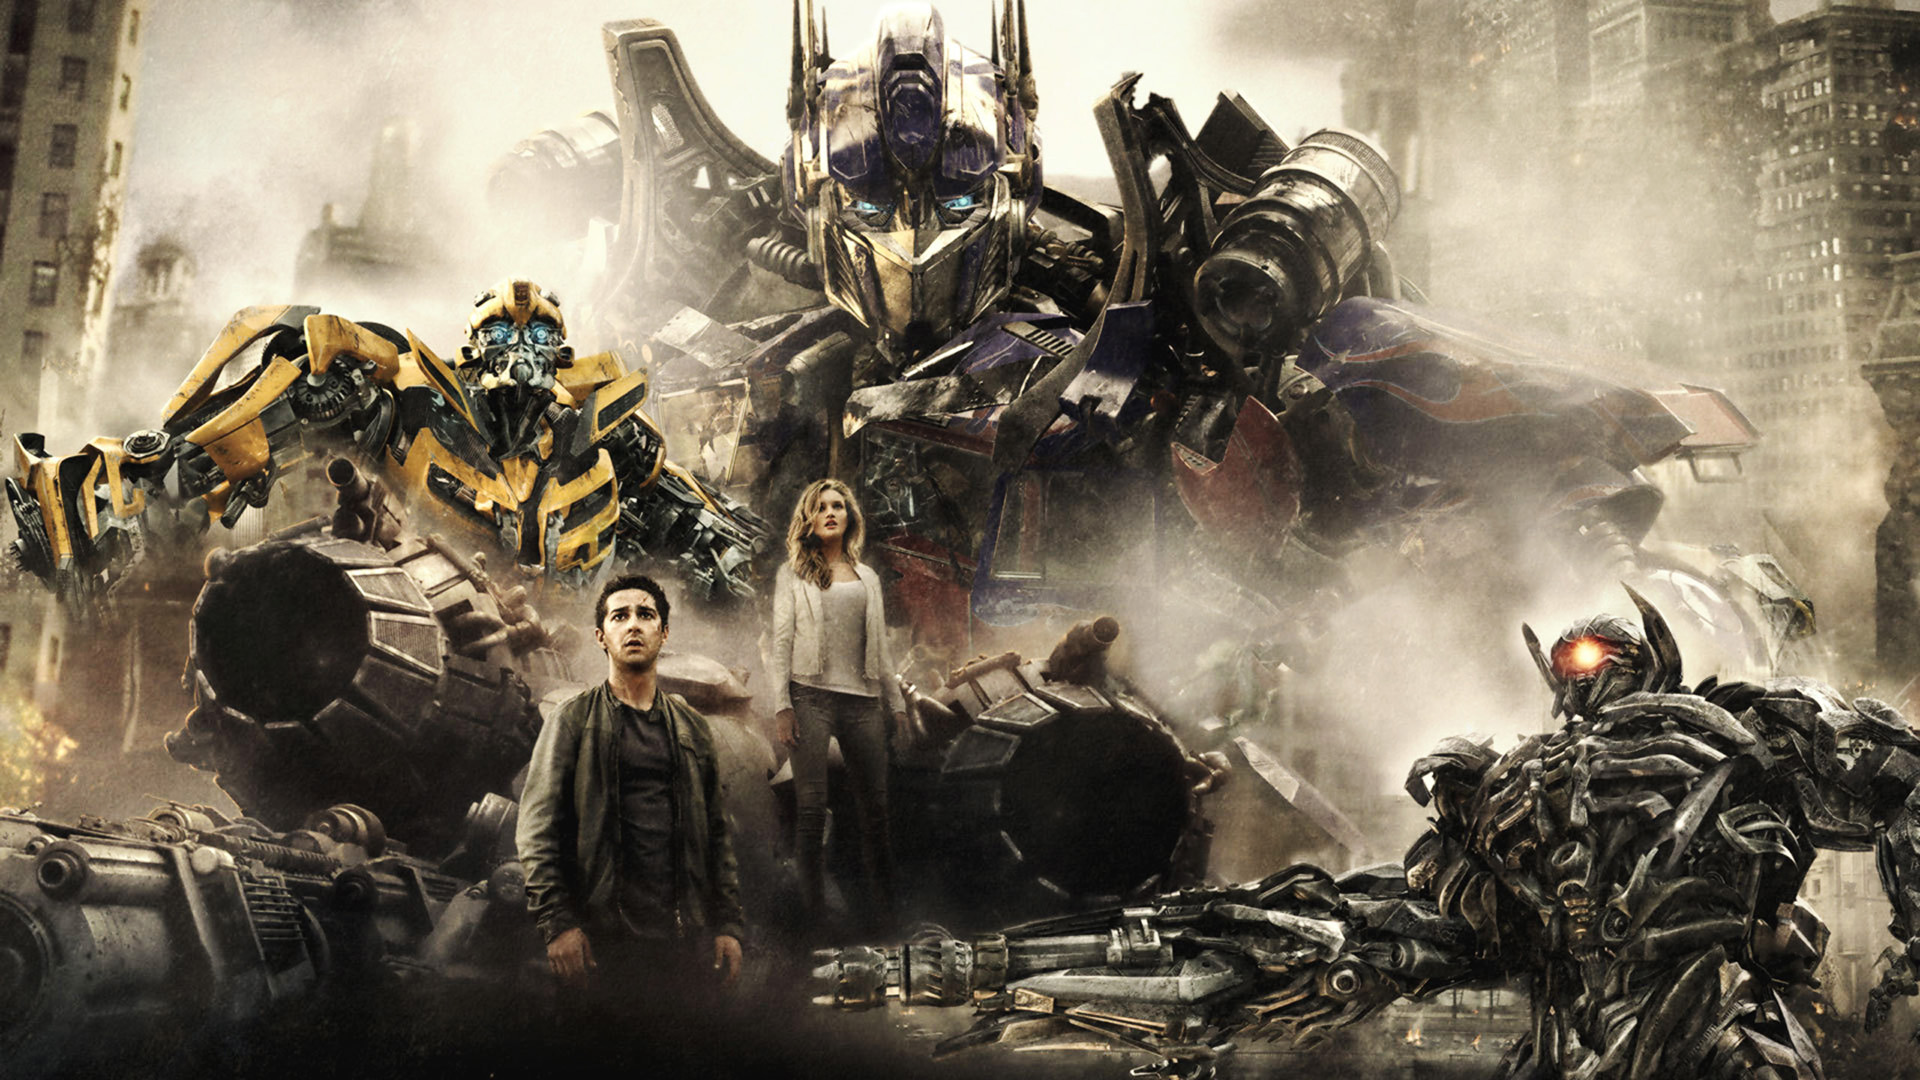 Transformers 3 Dark of the Moon Wallpapers (1920 x 1080 ...